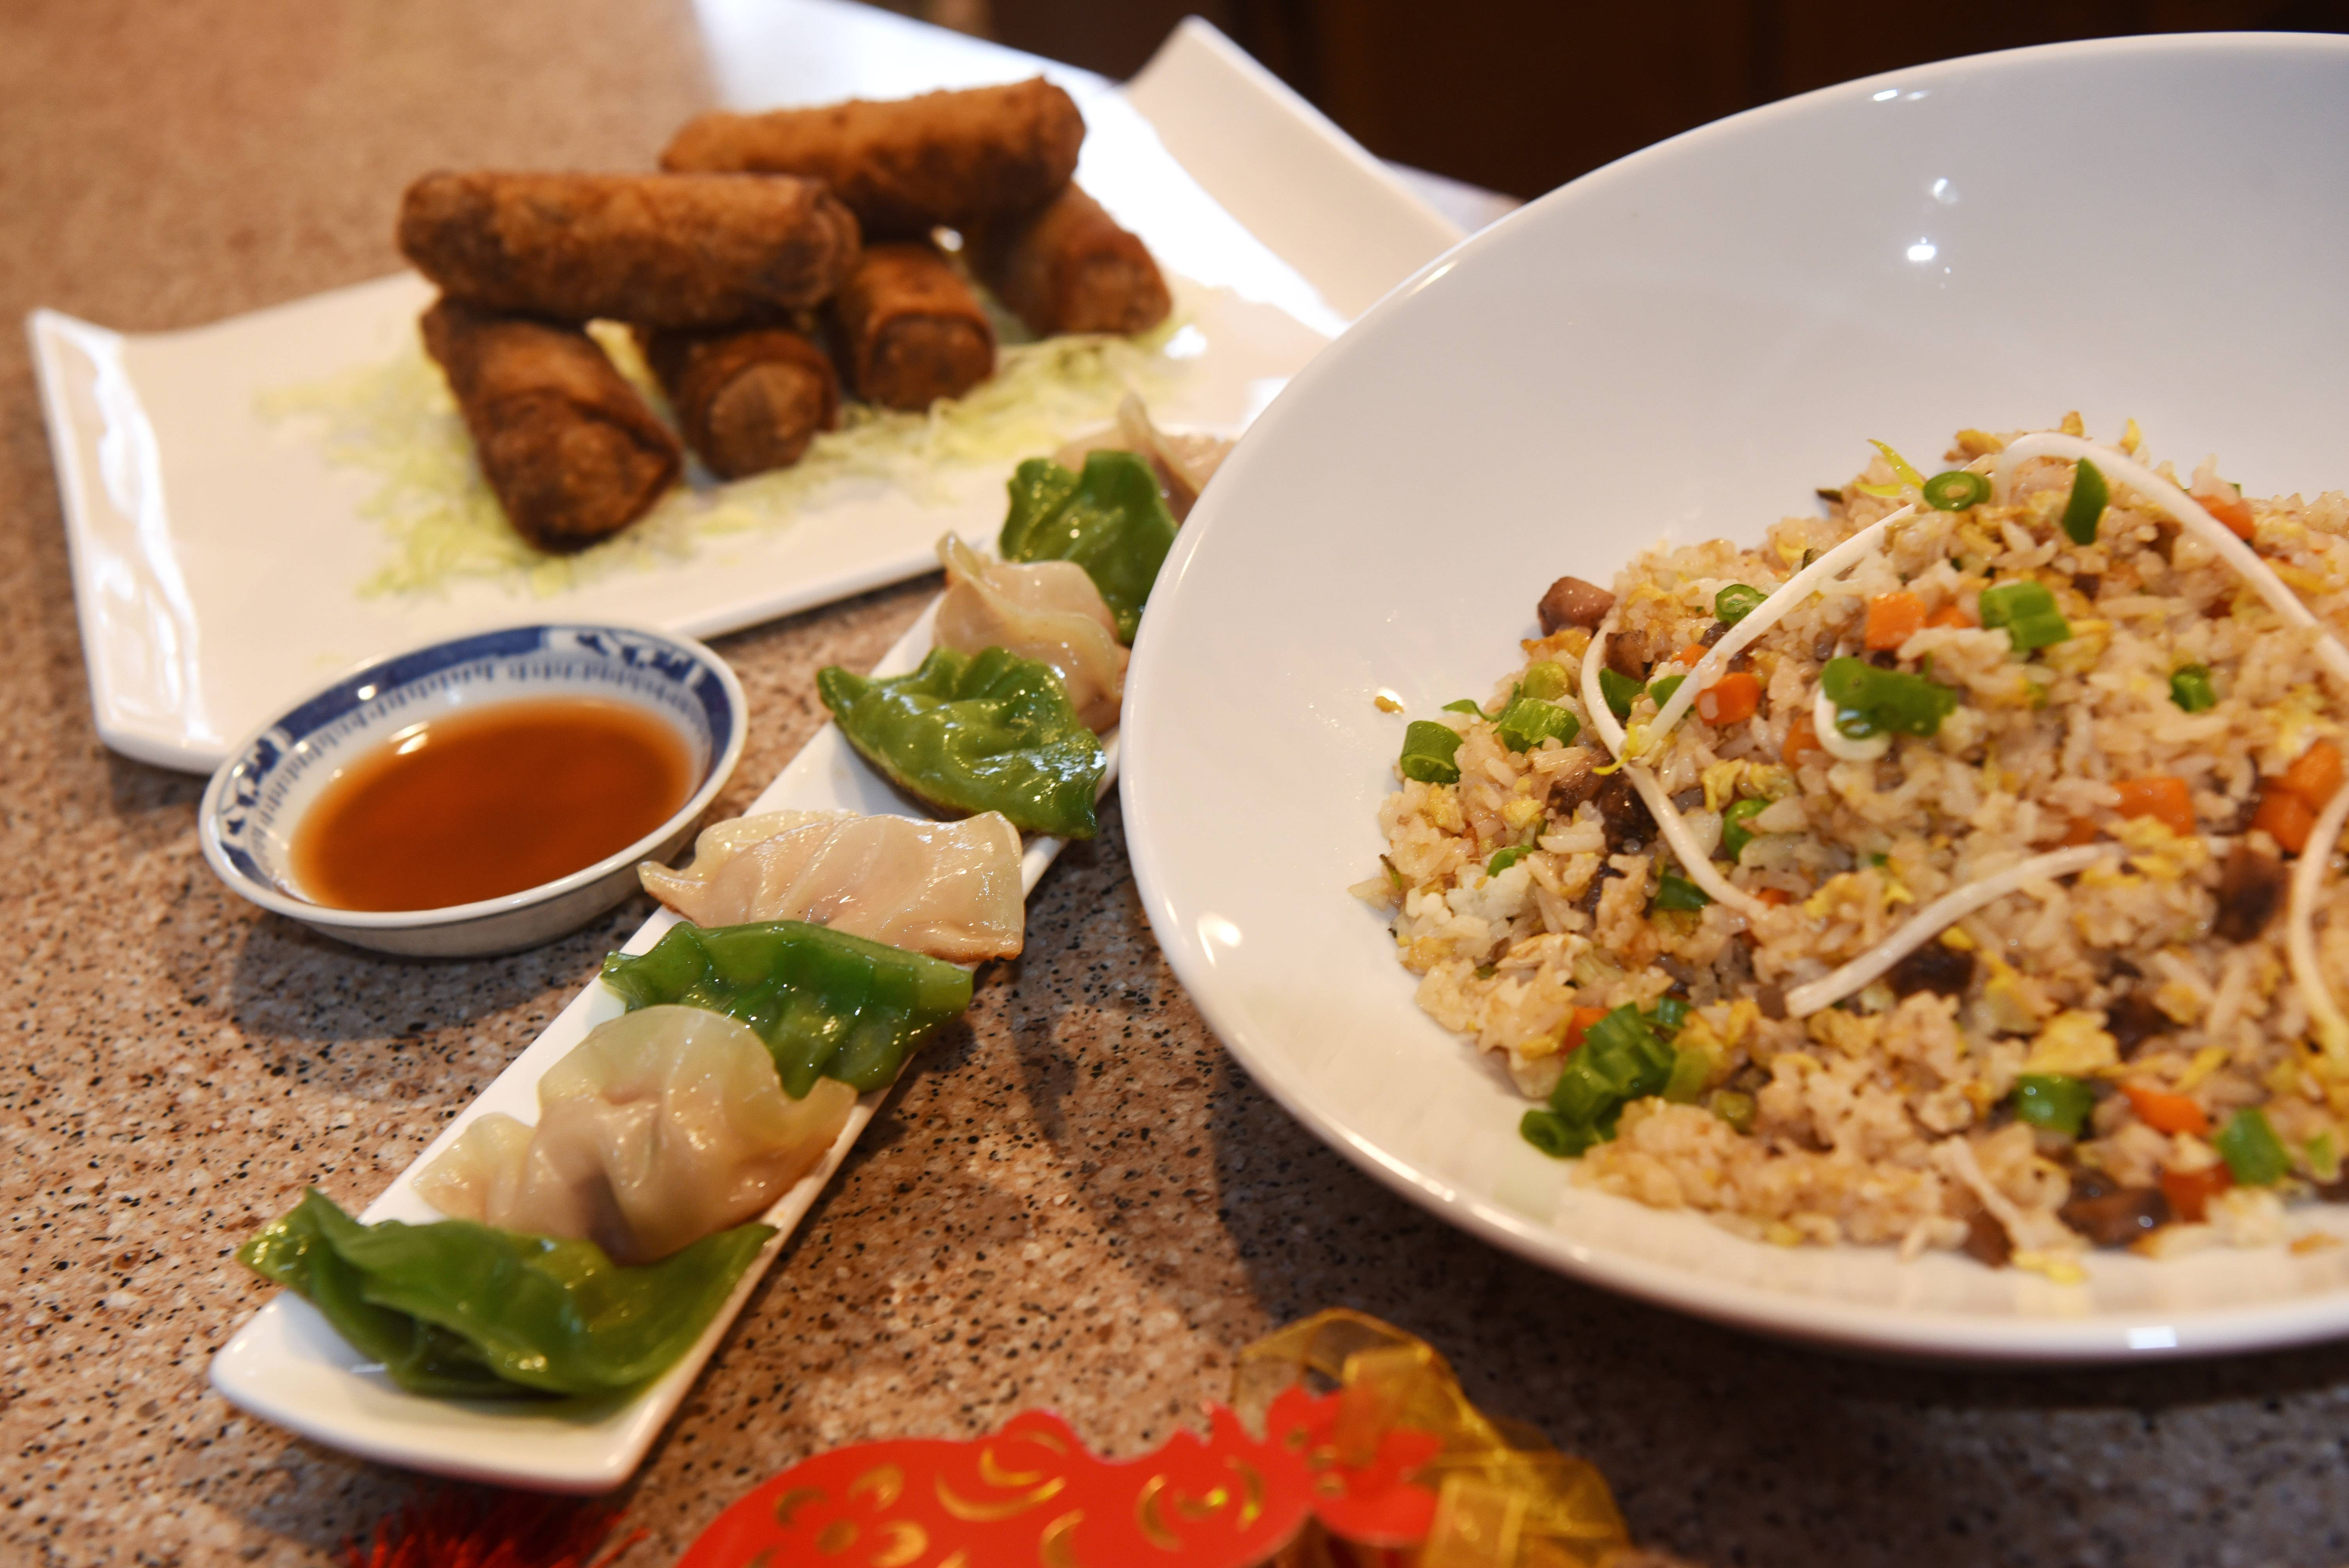 Ying Stoller of Gurnee says the best way to learn Chinese cooking is to just dive right in with simple fried rice or pot stickers.